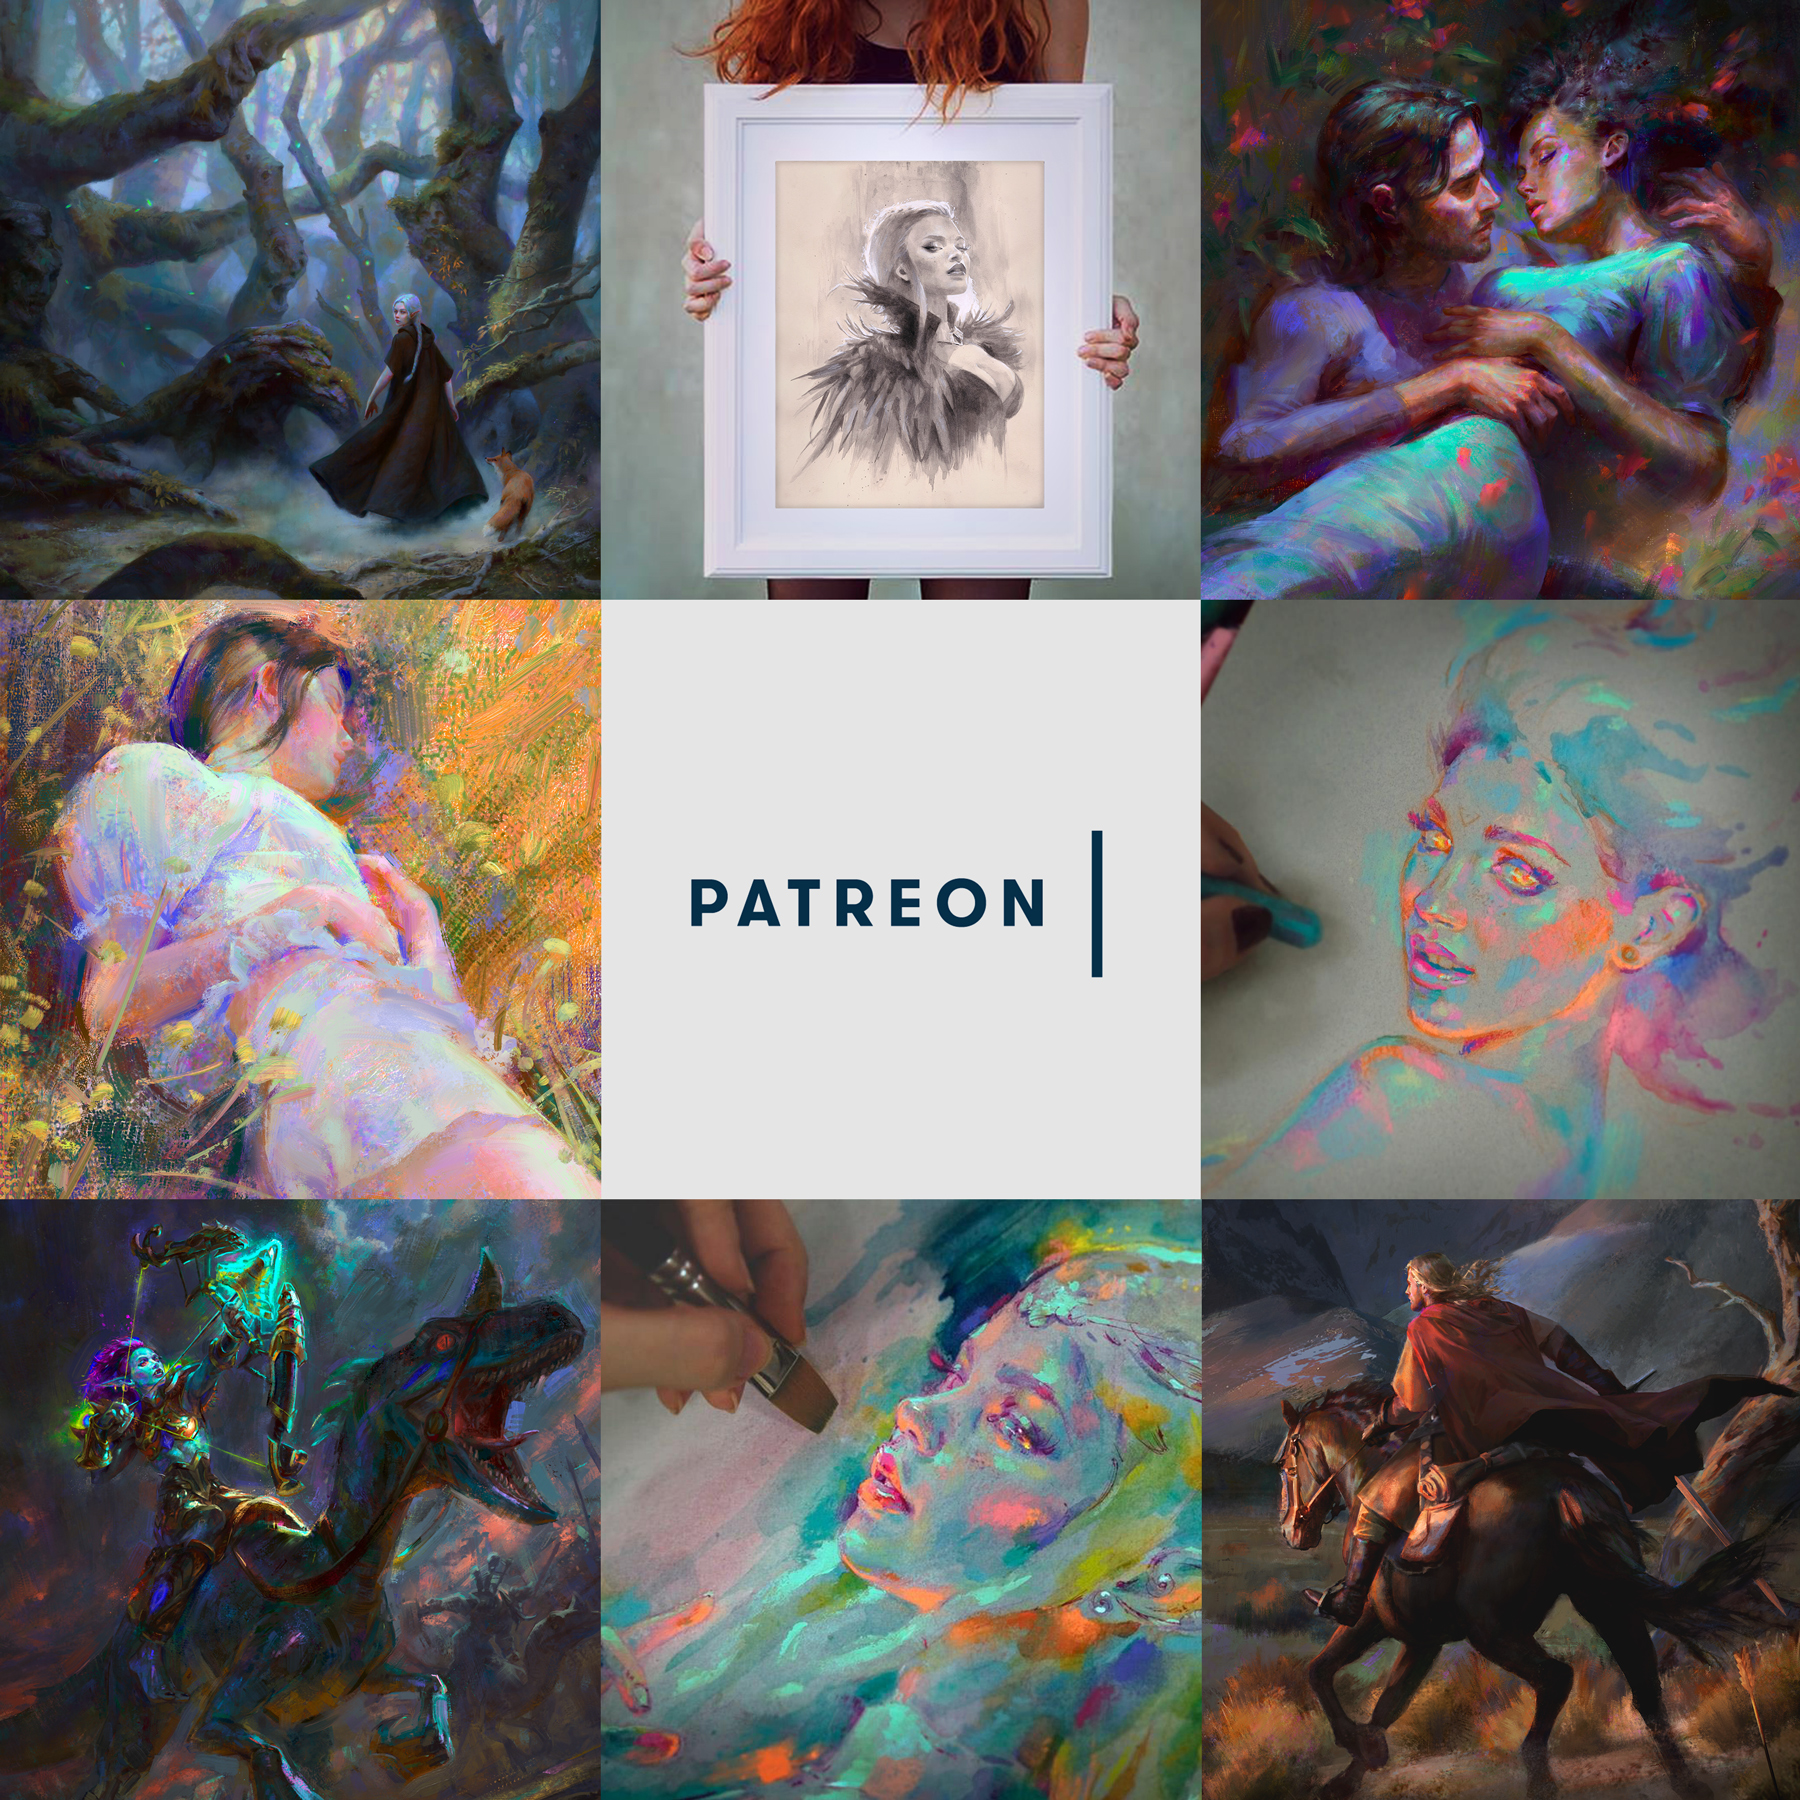 Patreon Martanael